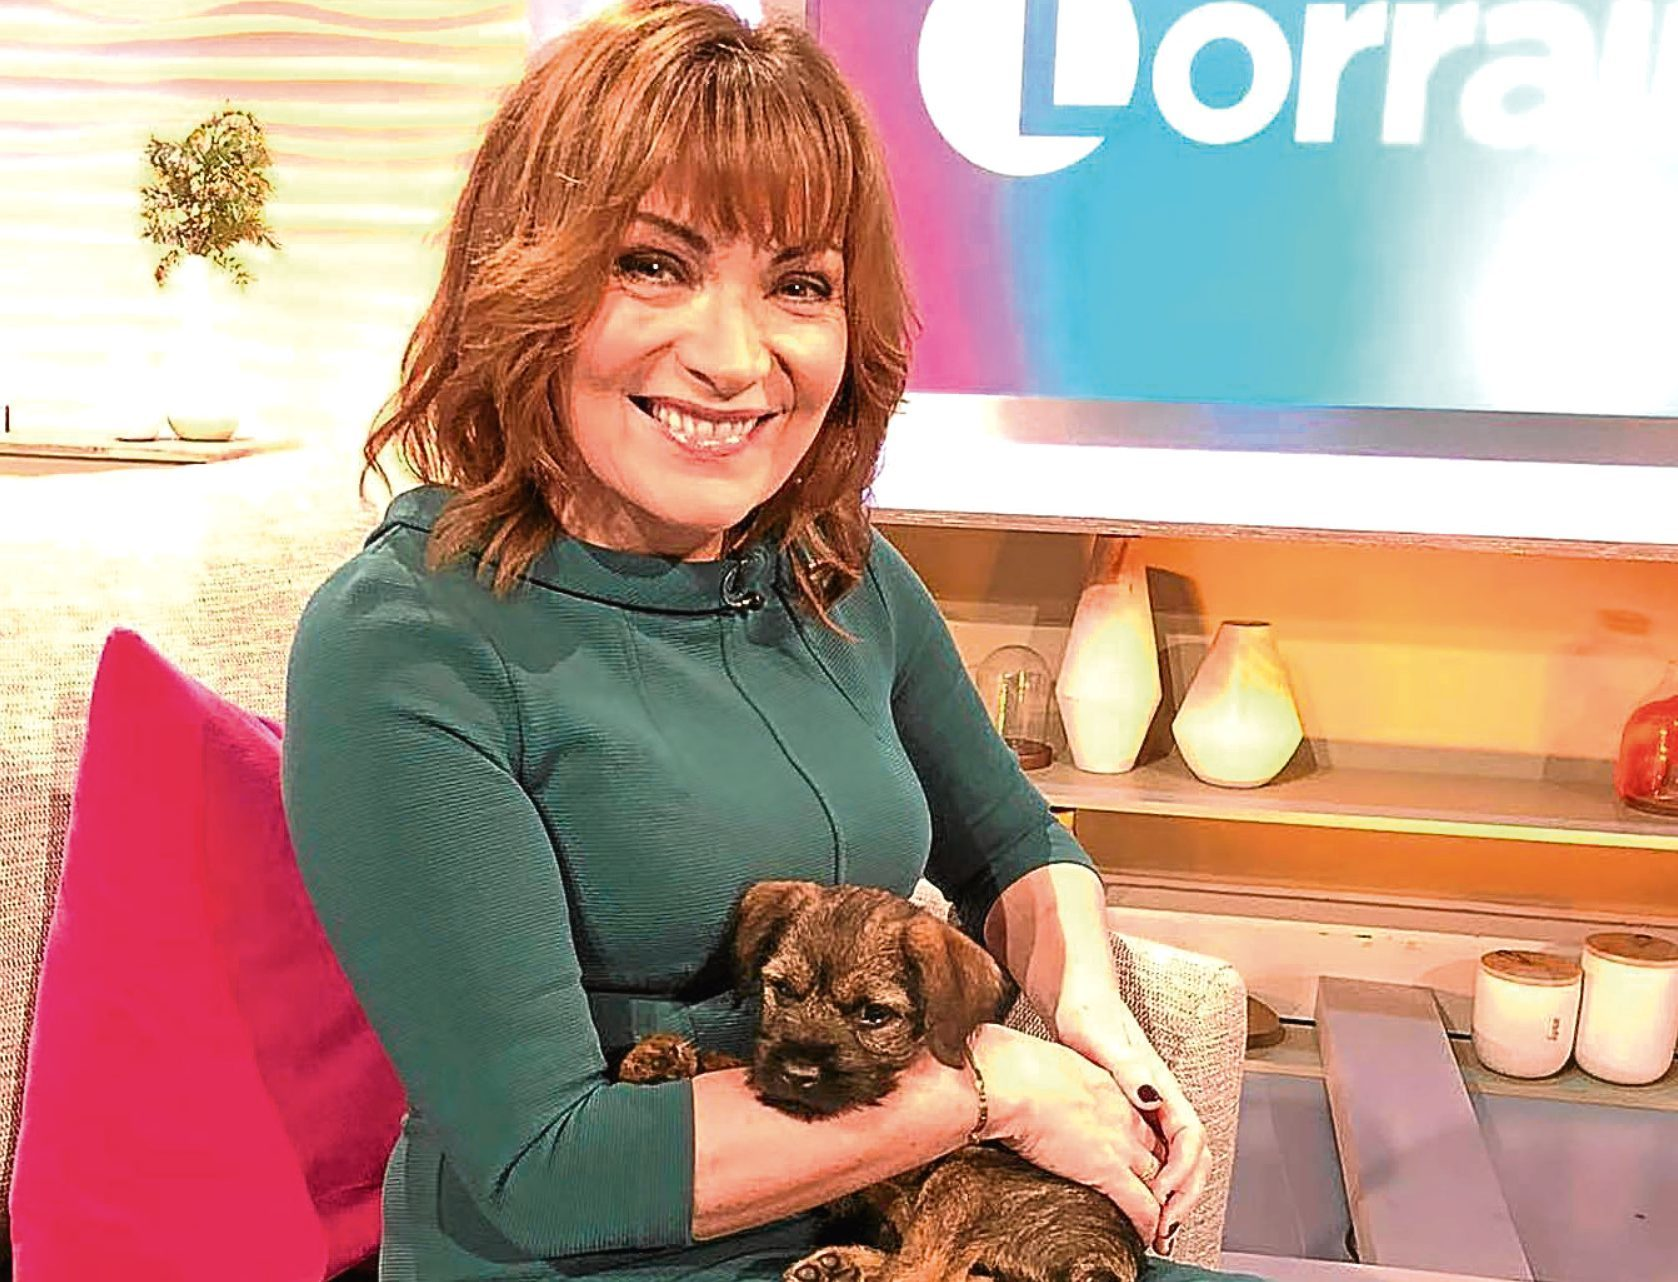 Lorraine Kelly with her new puppy, Angus